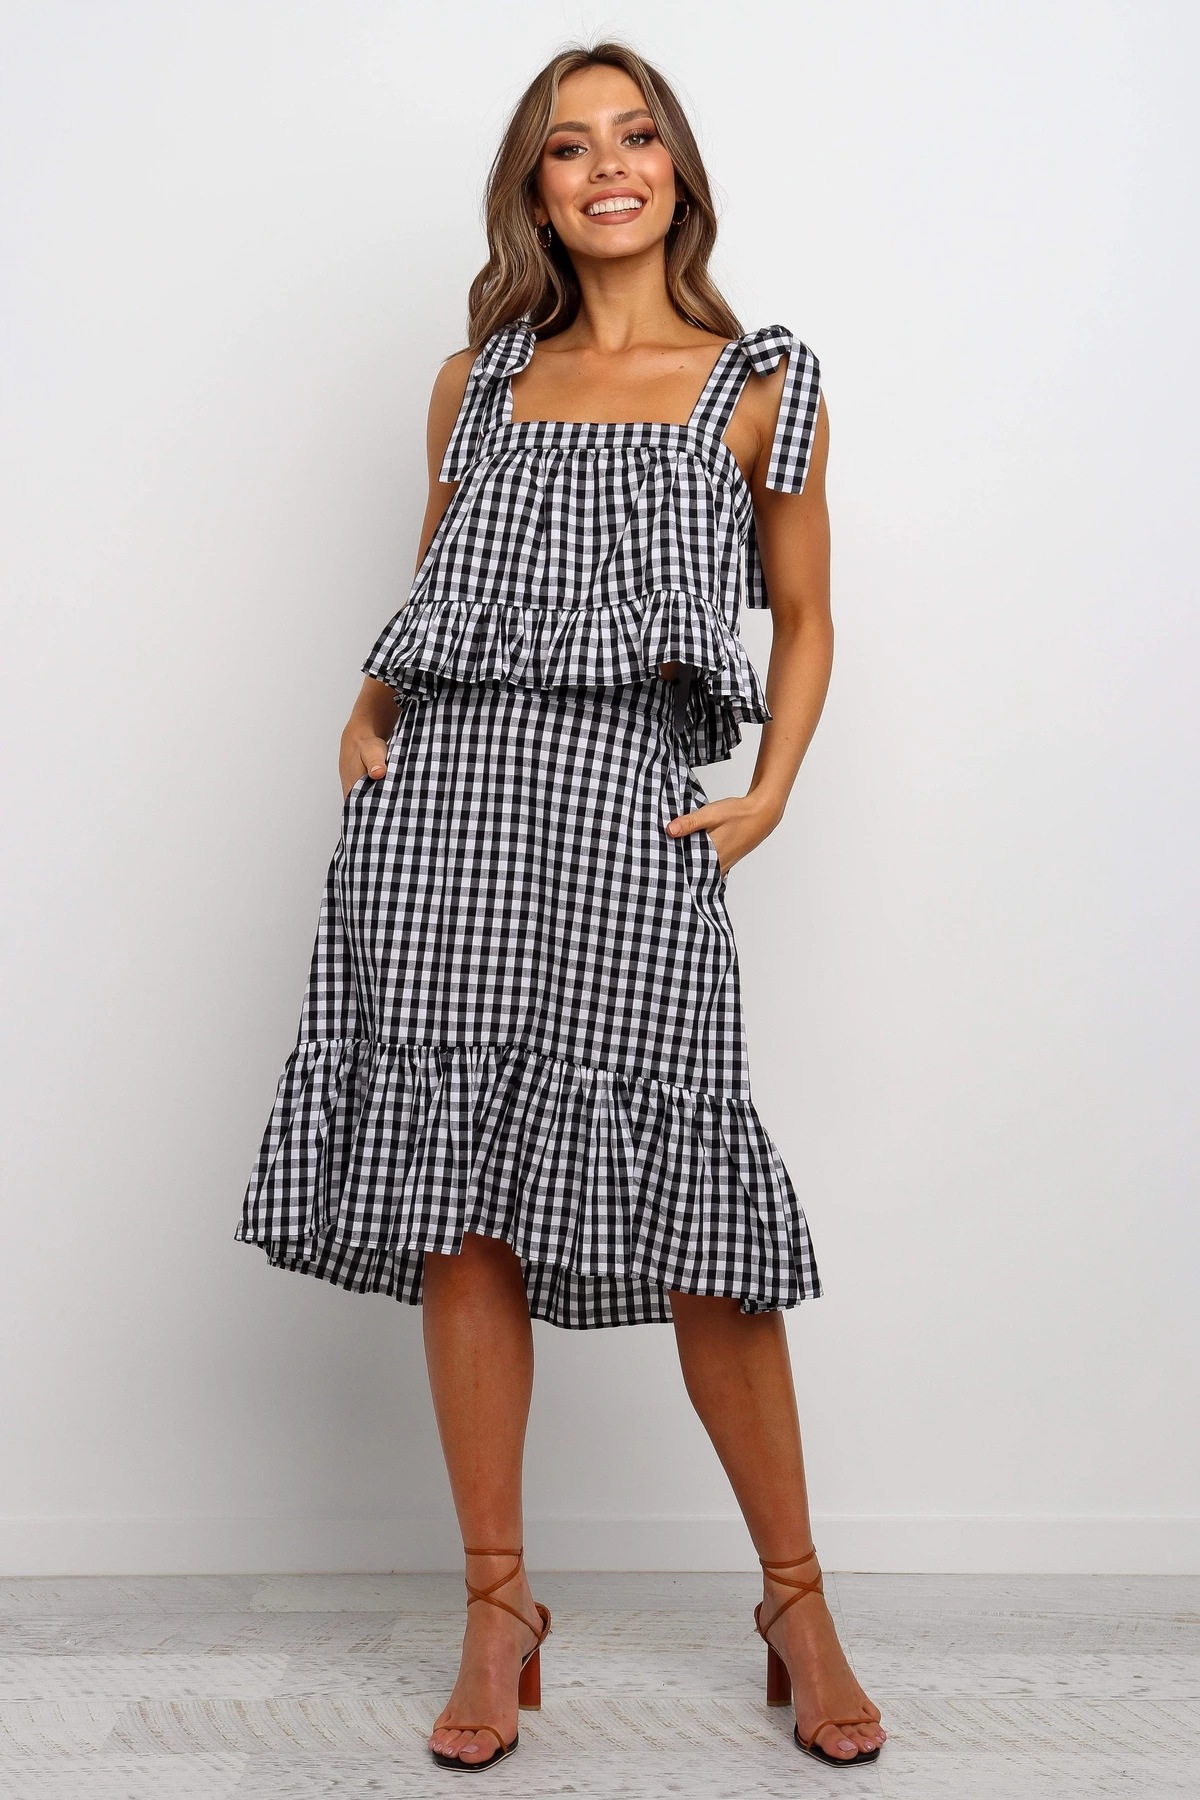 spring and summer new women's plaid sling top skirt casual suit NSYD4126